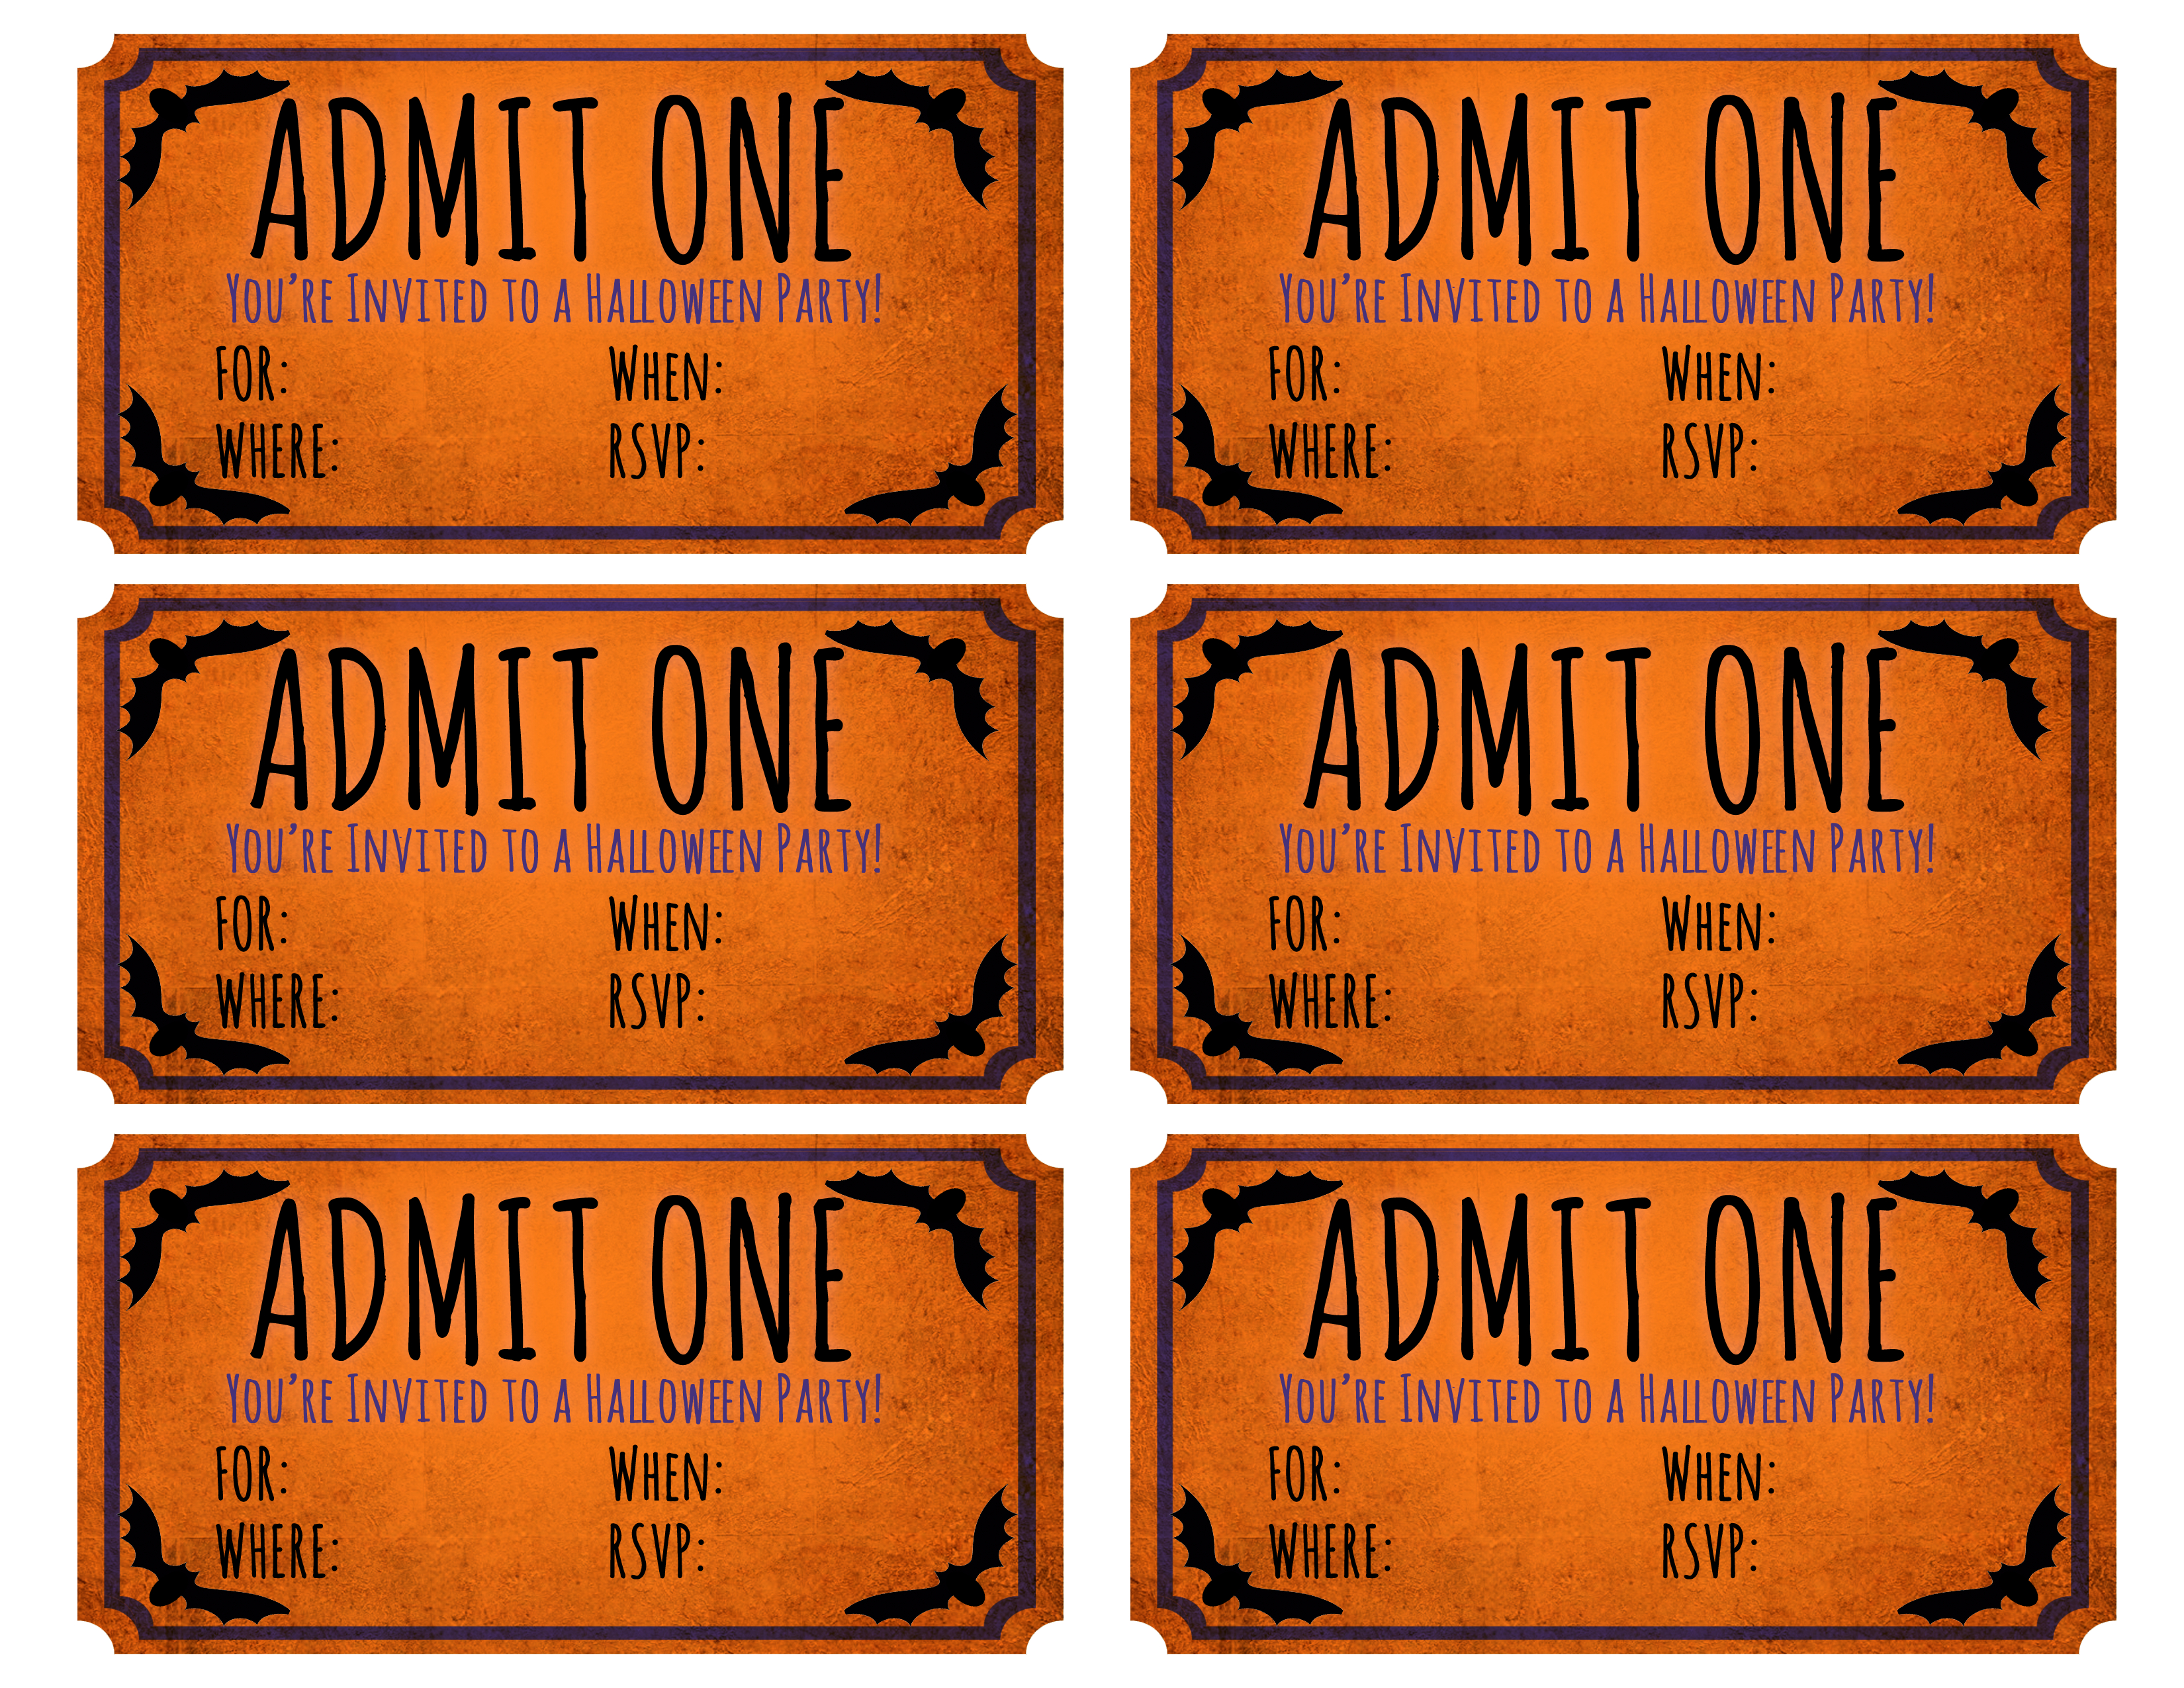 Blank Movie Ticket | Free Download Best Blank Movie Ticket On - Free Printable Admission Ticket Template